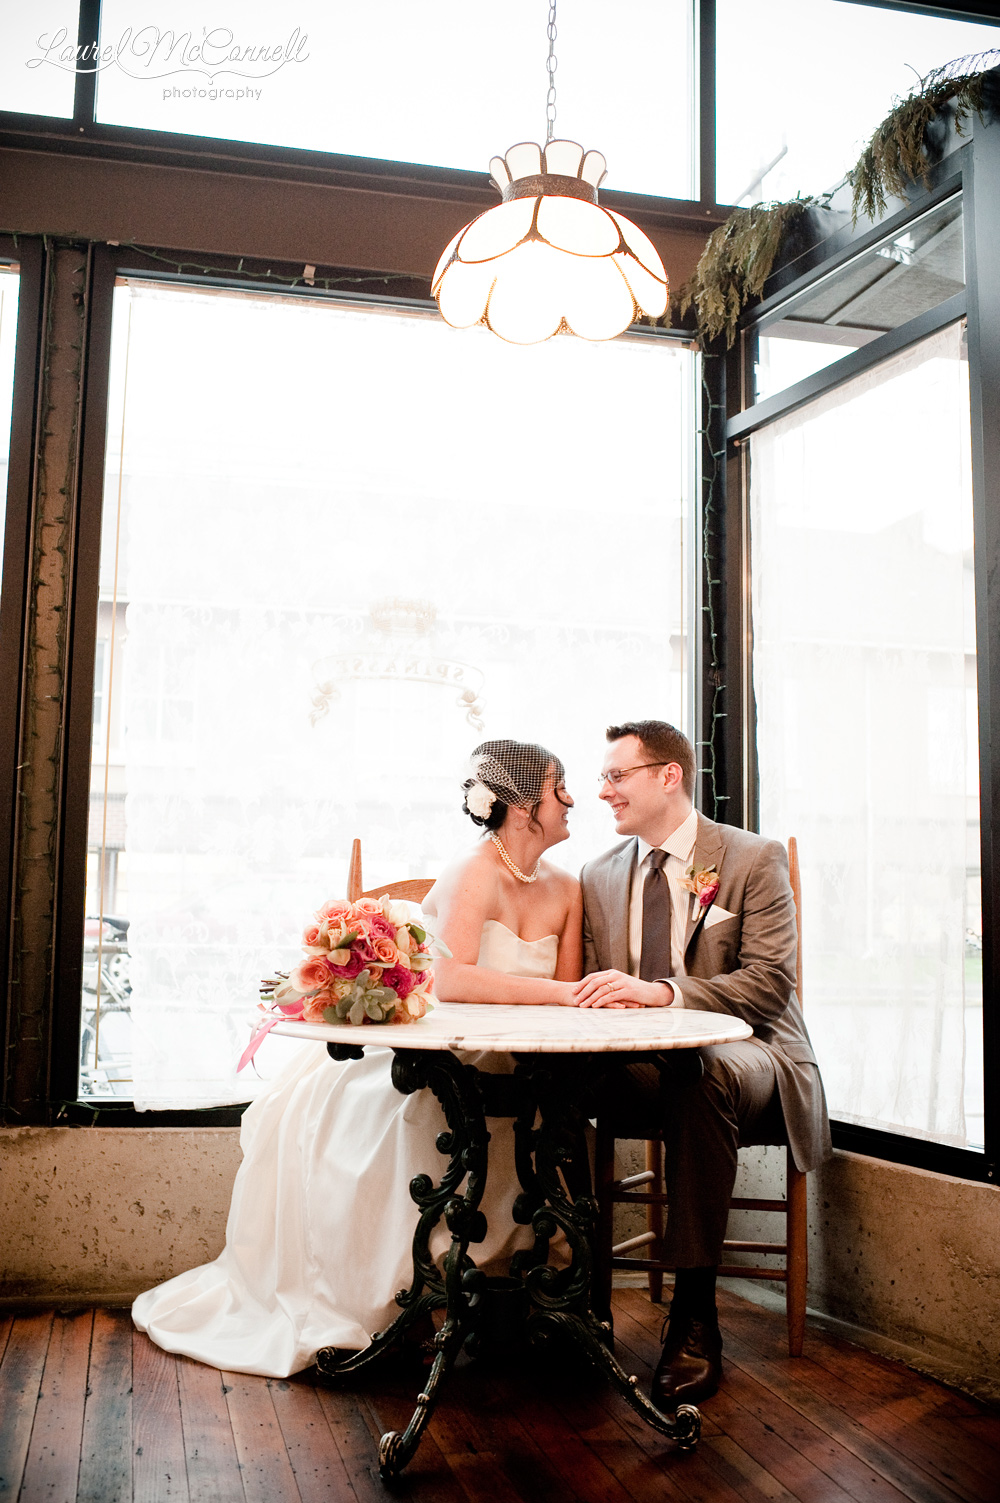 Rainy day wedding portrait in restaurant.